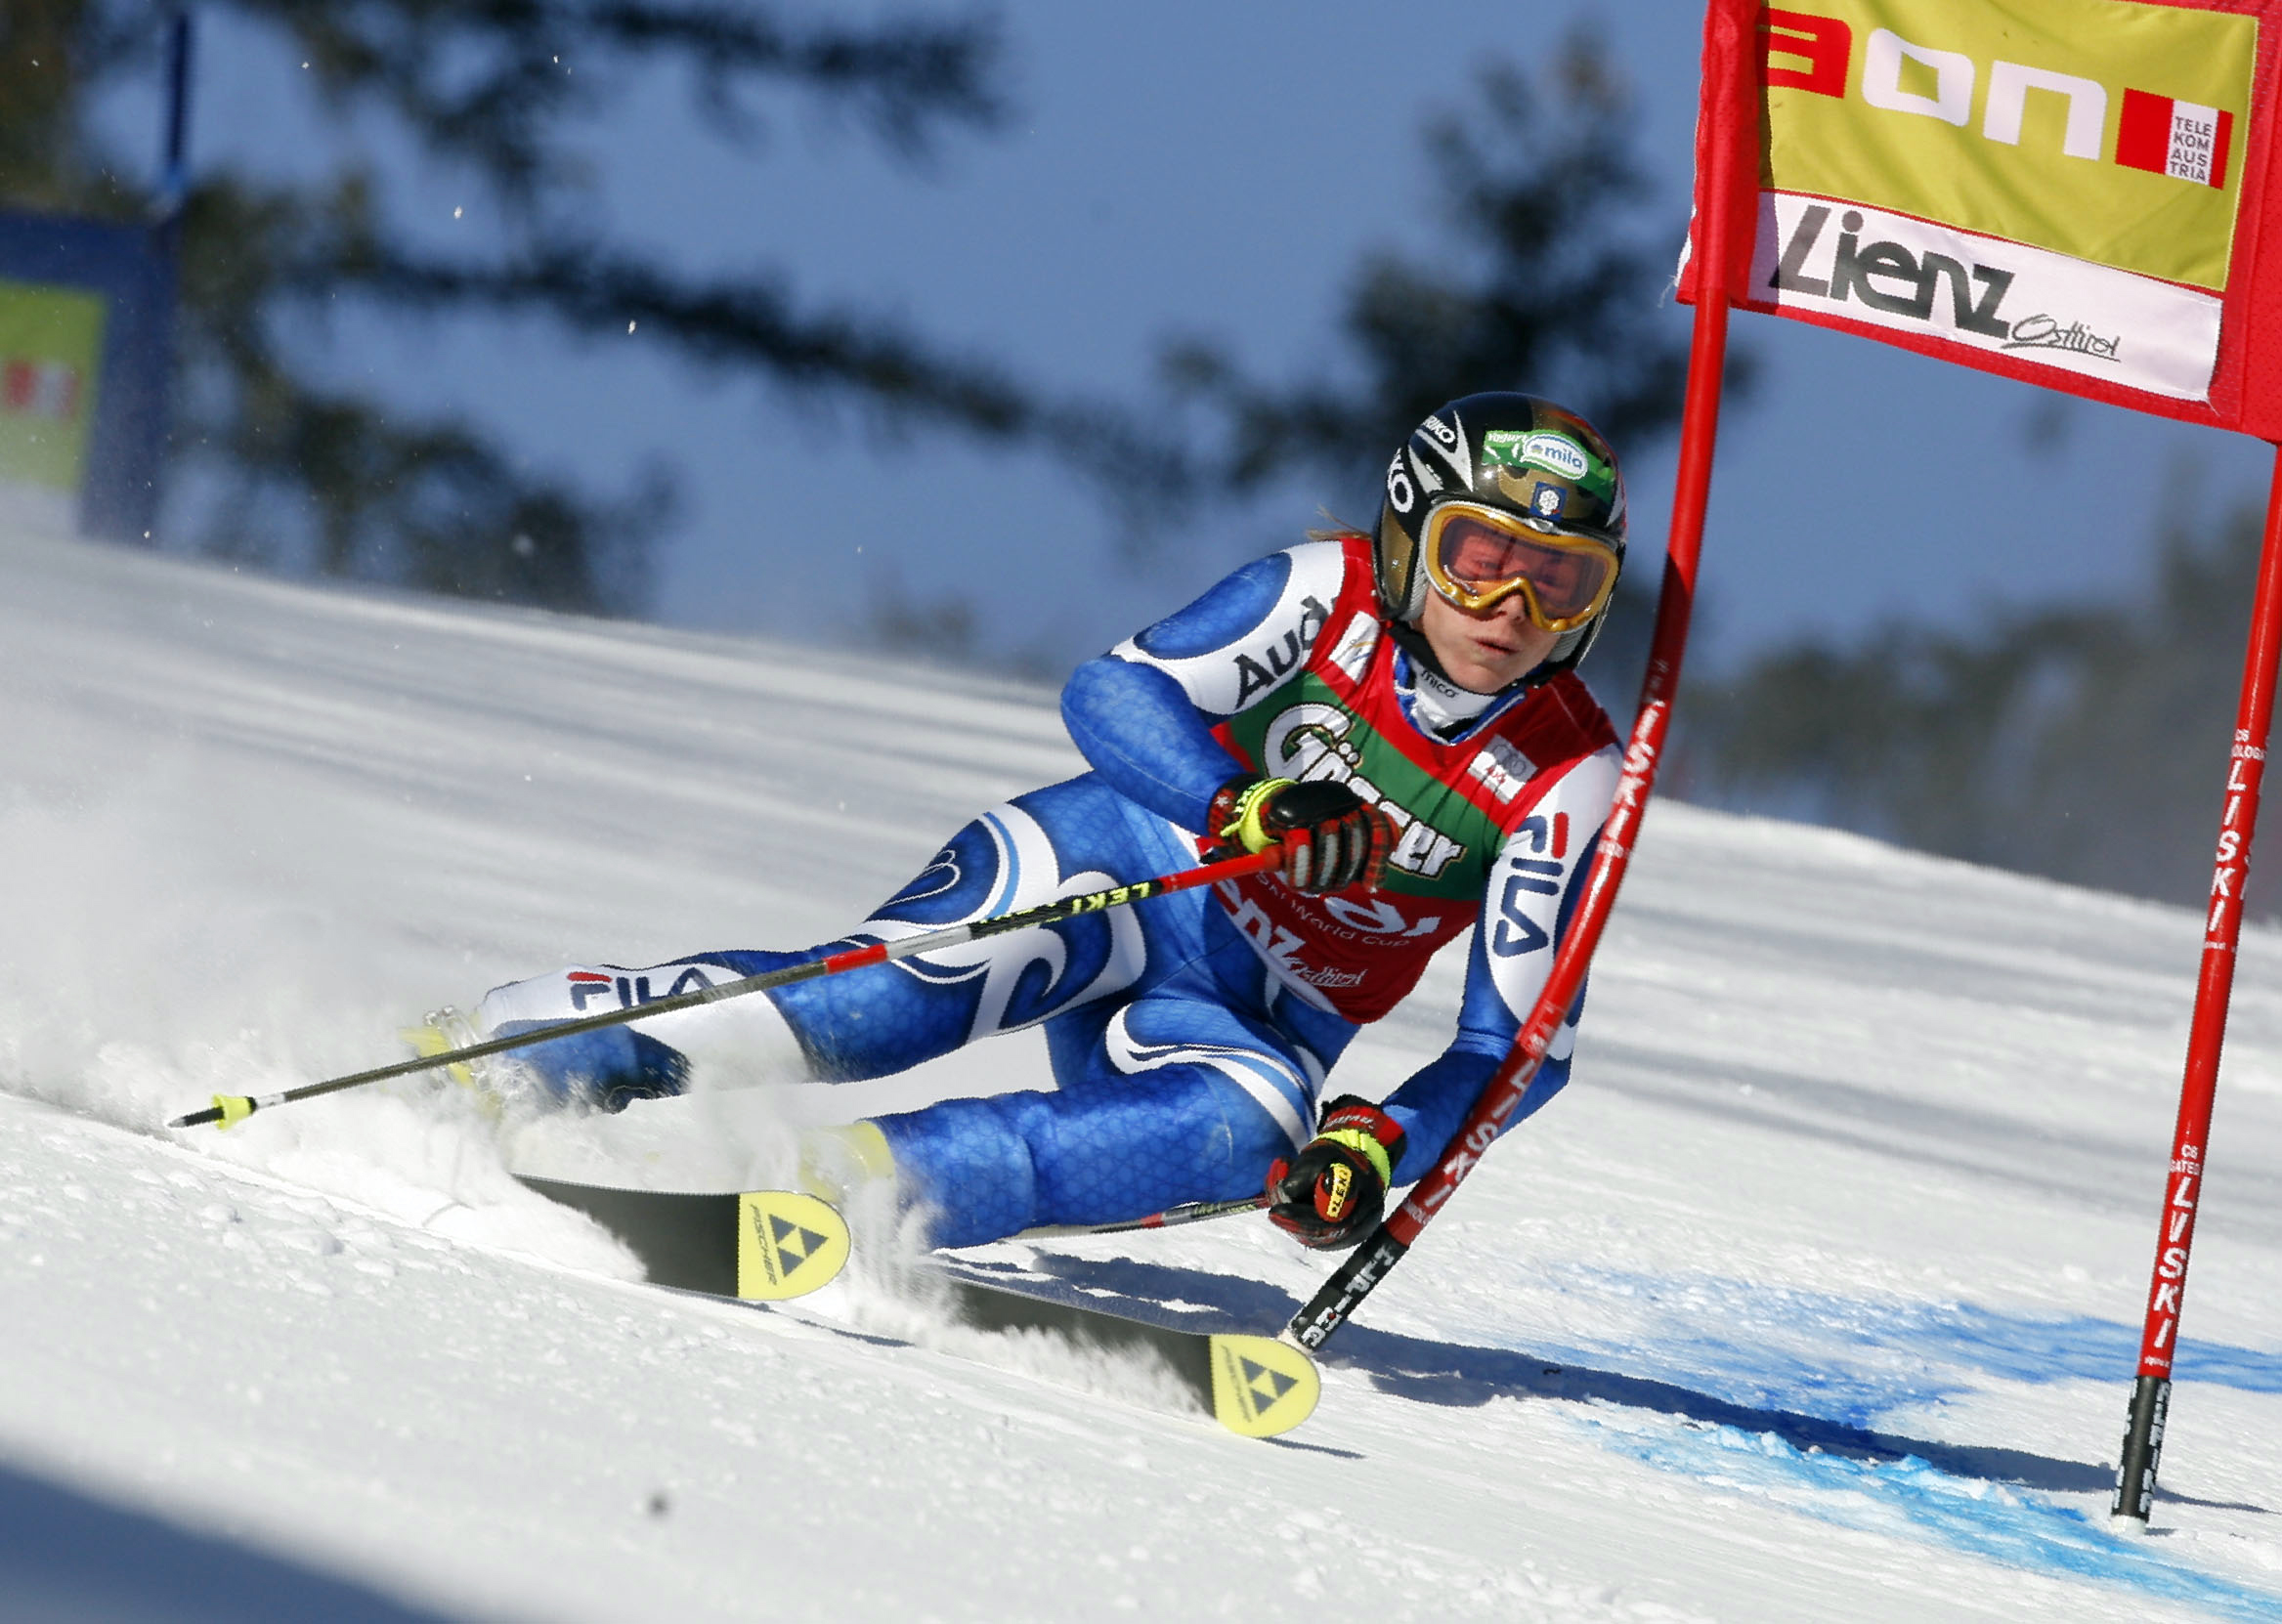 Denise Karbon, of Italy, passes a gate on her way to setting the fastest time during the first run of an alpine ski, women's World Cup giant slalom ra...